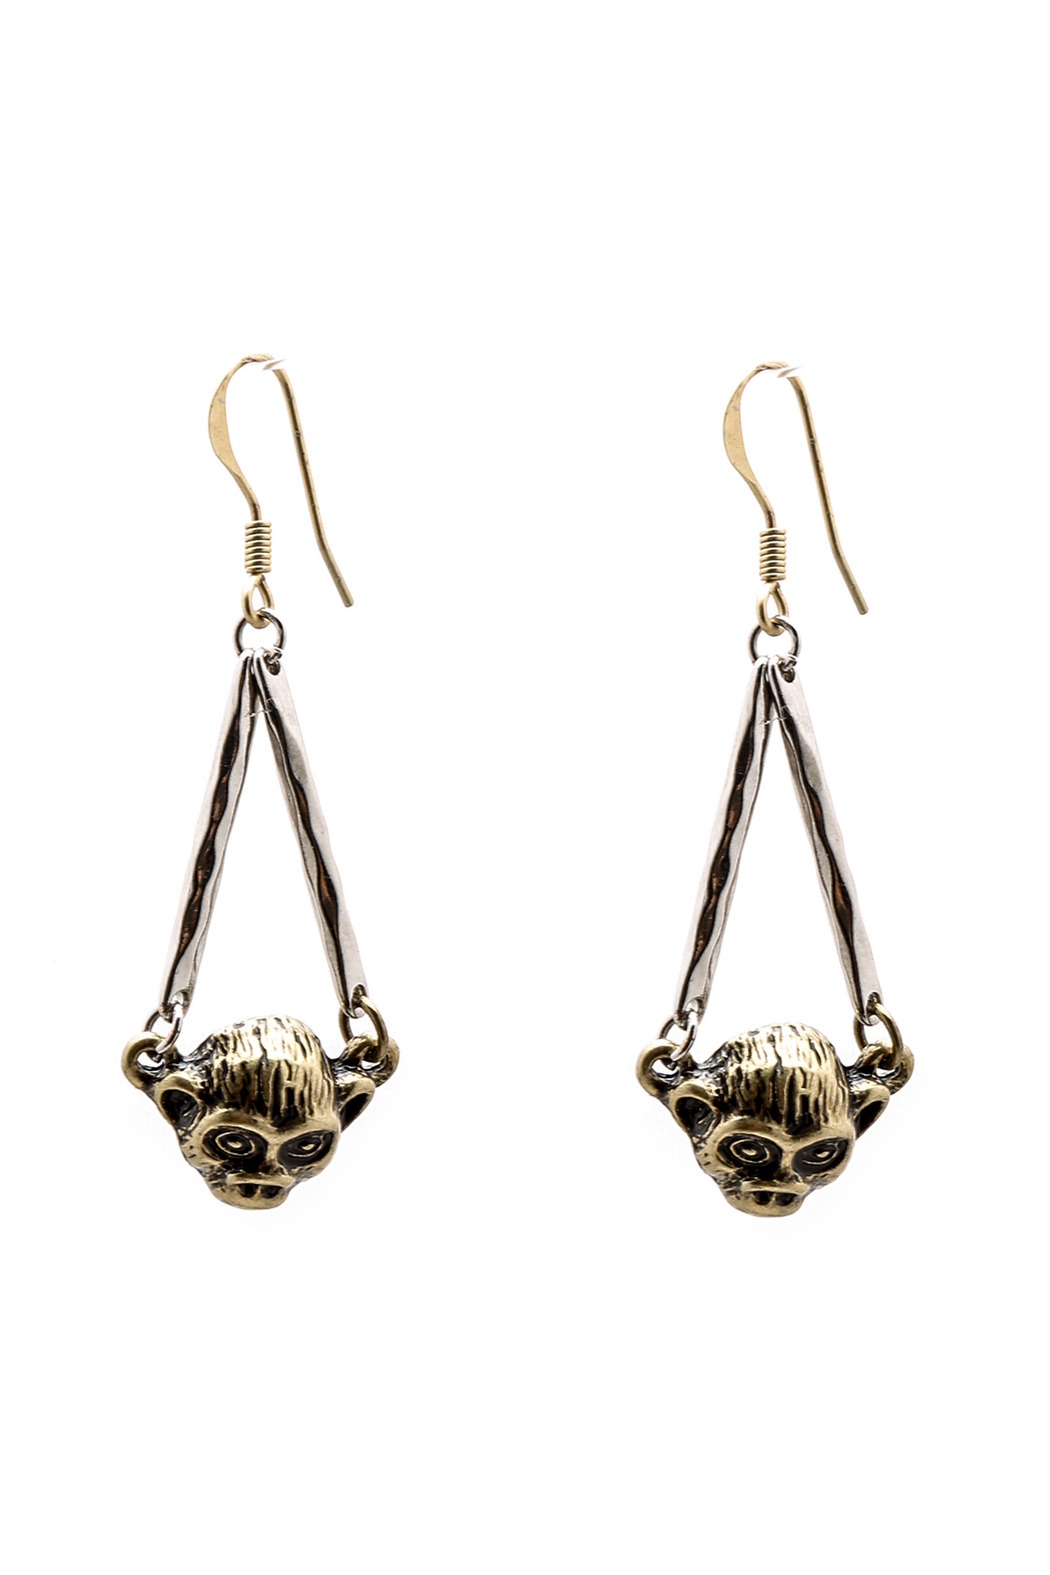 Andrew Tessier Designs Two Tone Jumanji Earrings - Large